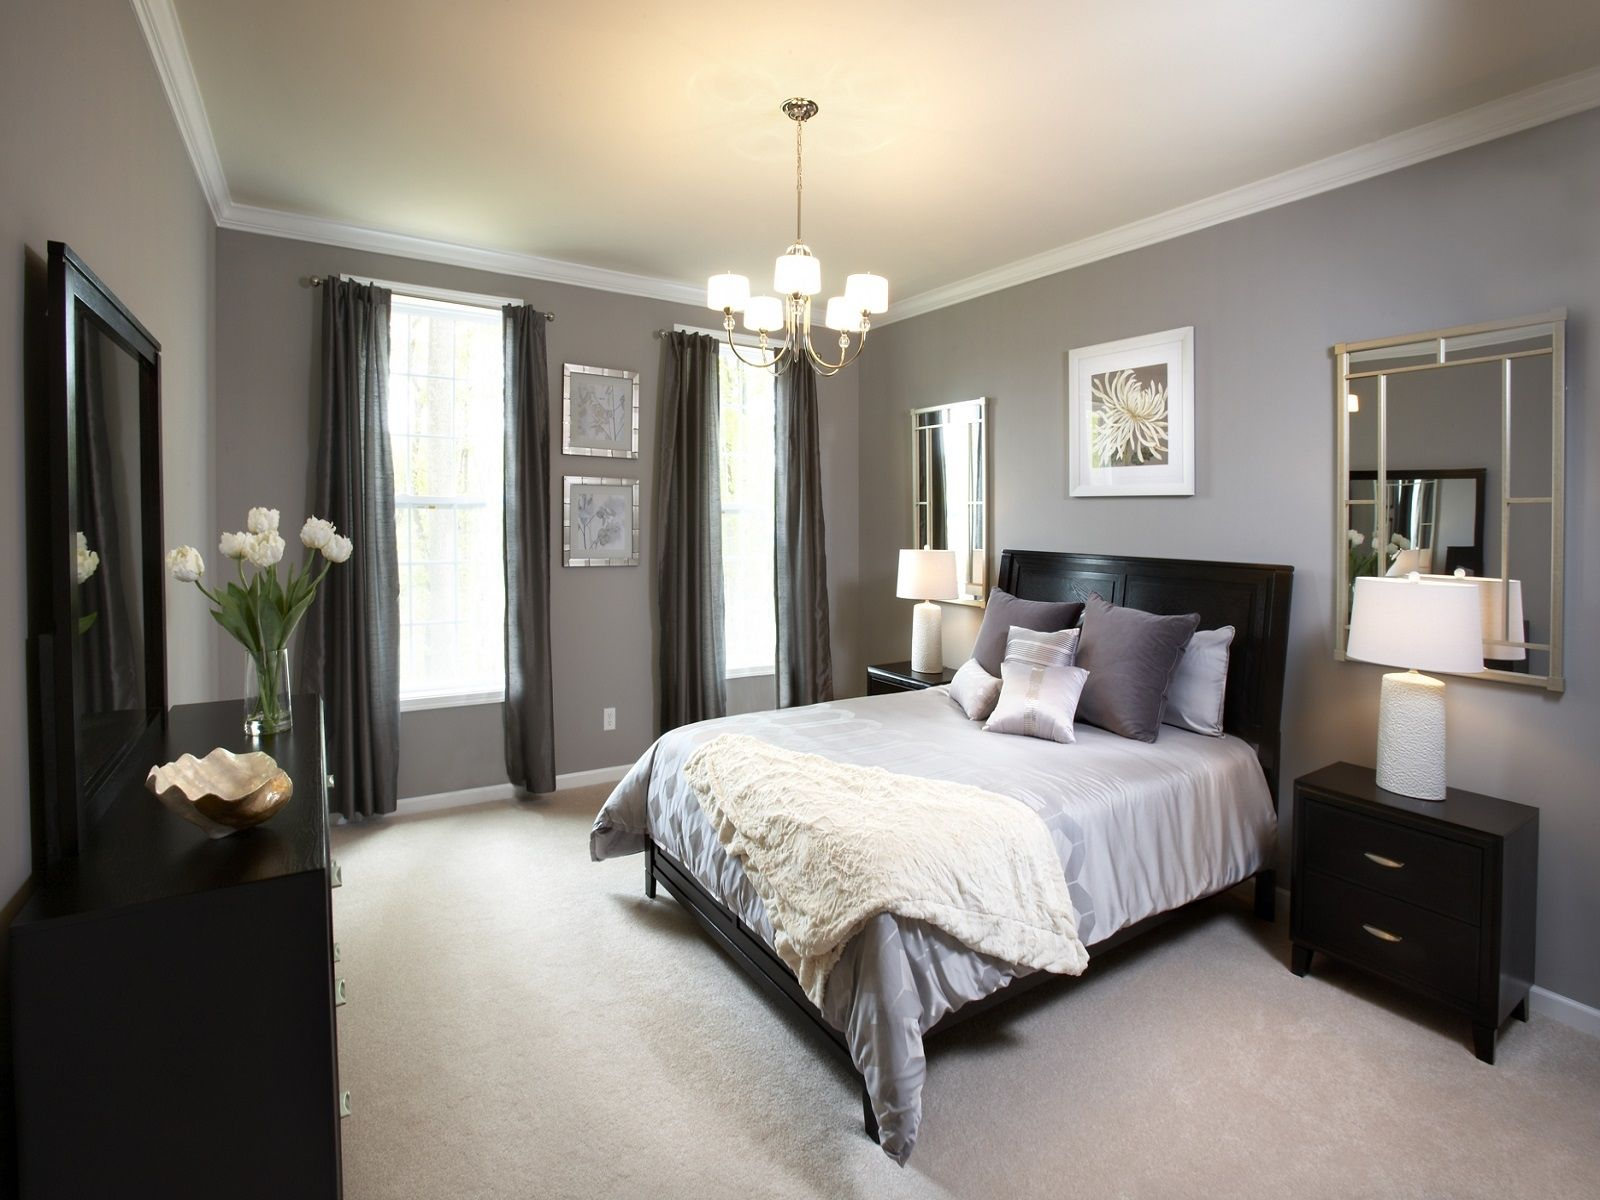 Brilliant Decorating Bedroom Ideas With Black Bed And Dark Dresser Near Grey Painted Wall